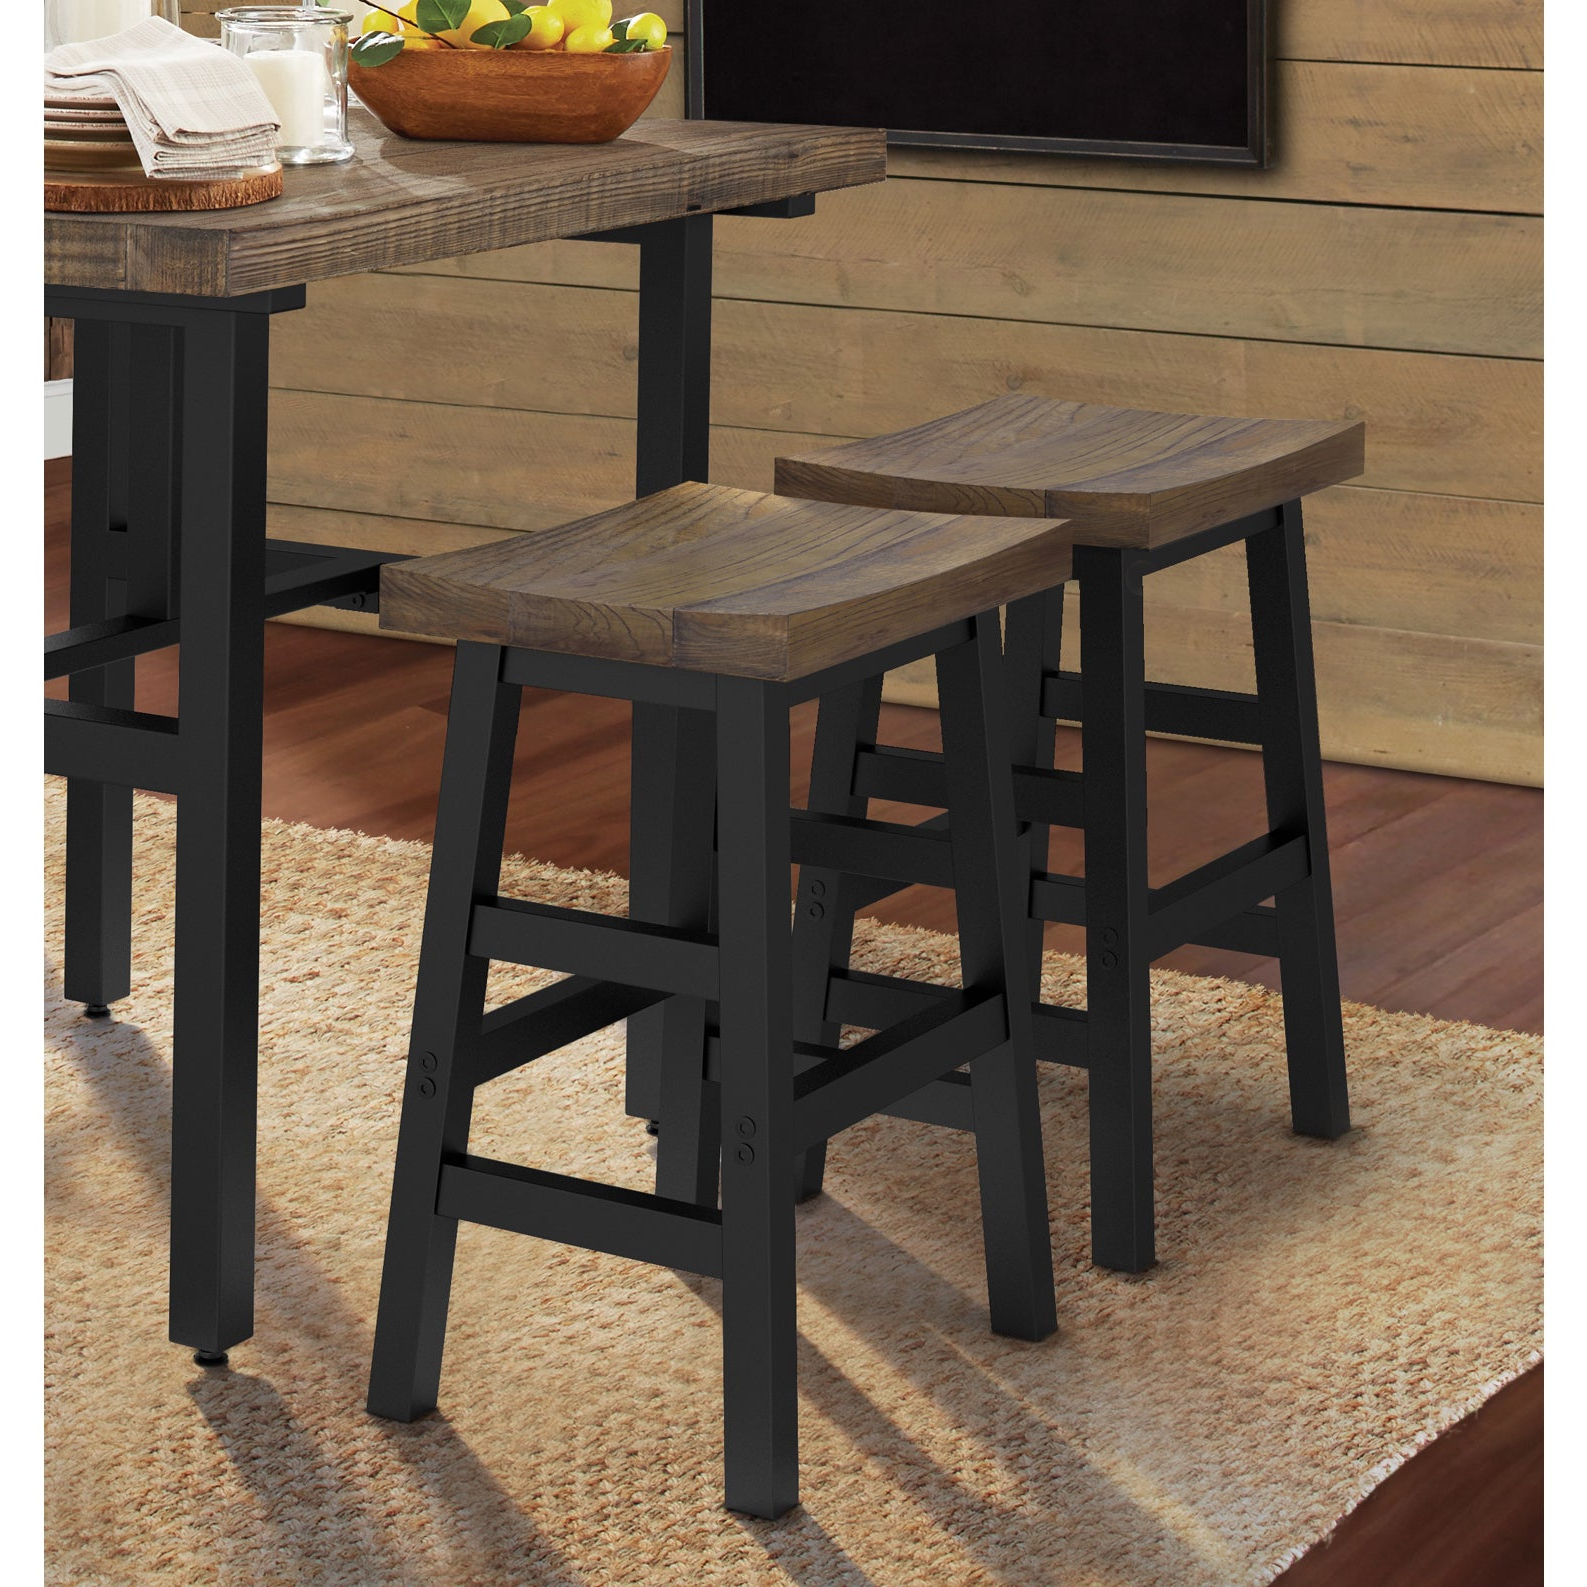 Carbon Loft Lawrence Reclaimed Wood And Metal Counter Stool Intended For Recent Carbon Loft Lawrence Metal And Reclaimed Wood Coffee Tables (View 4 of 20)